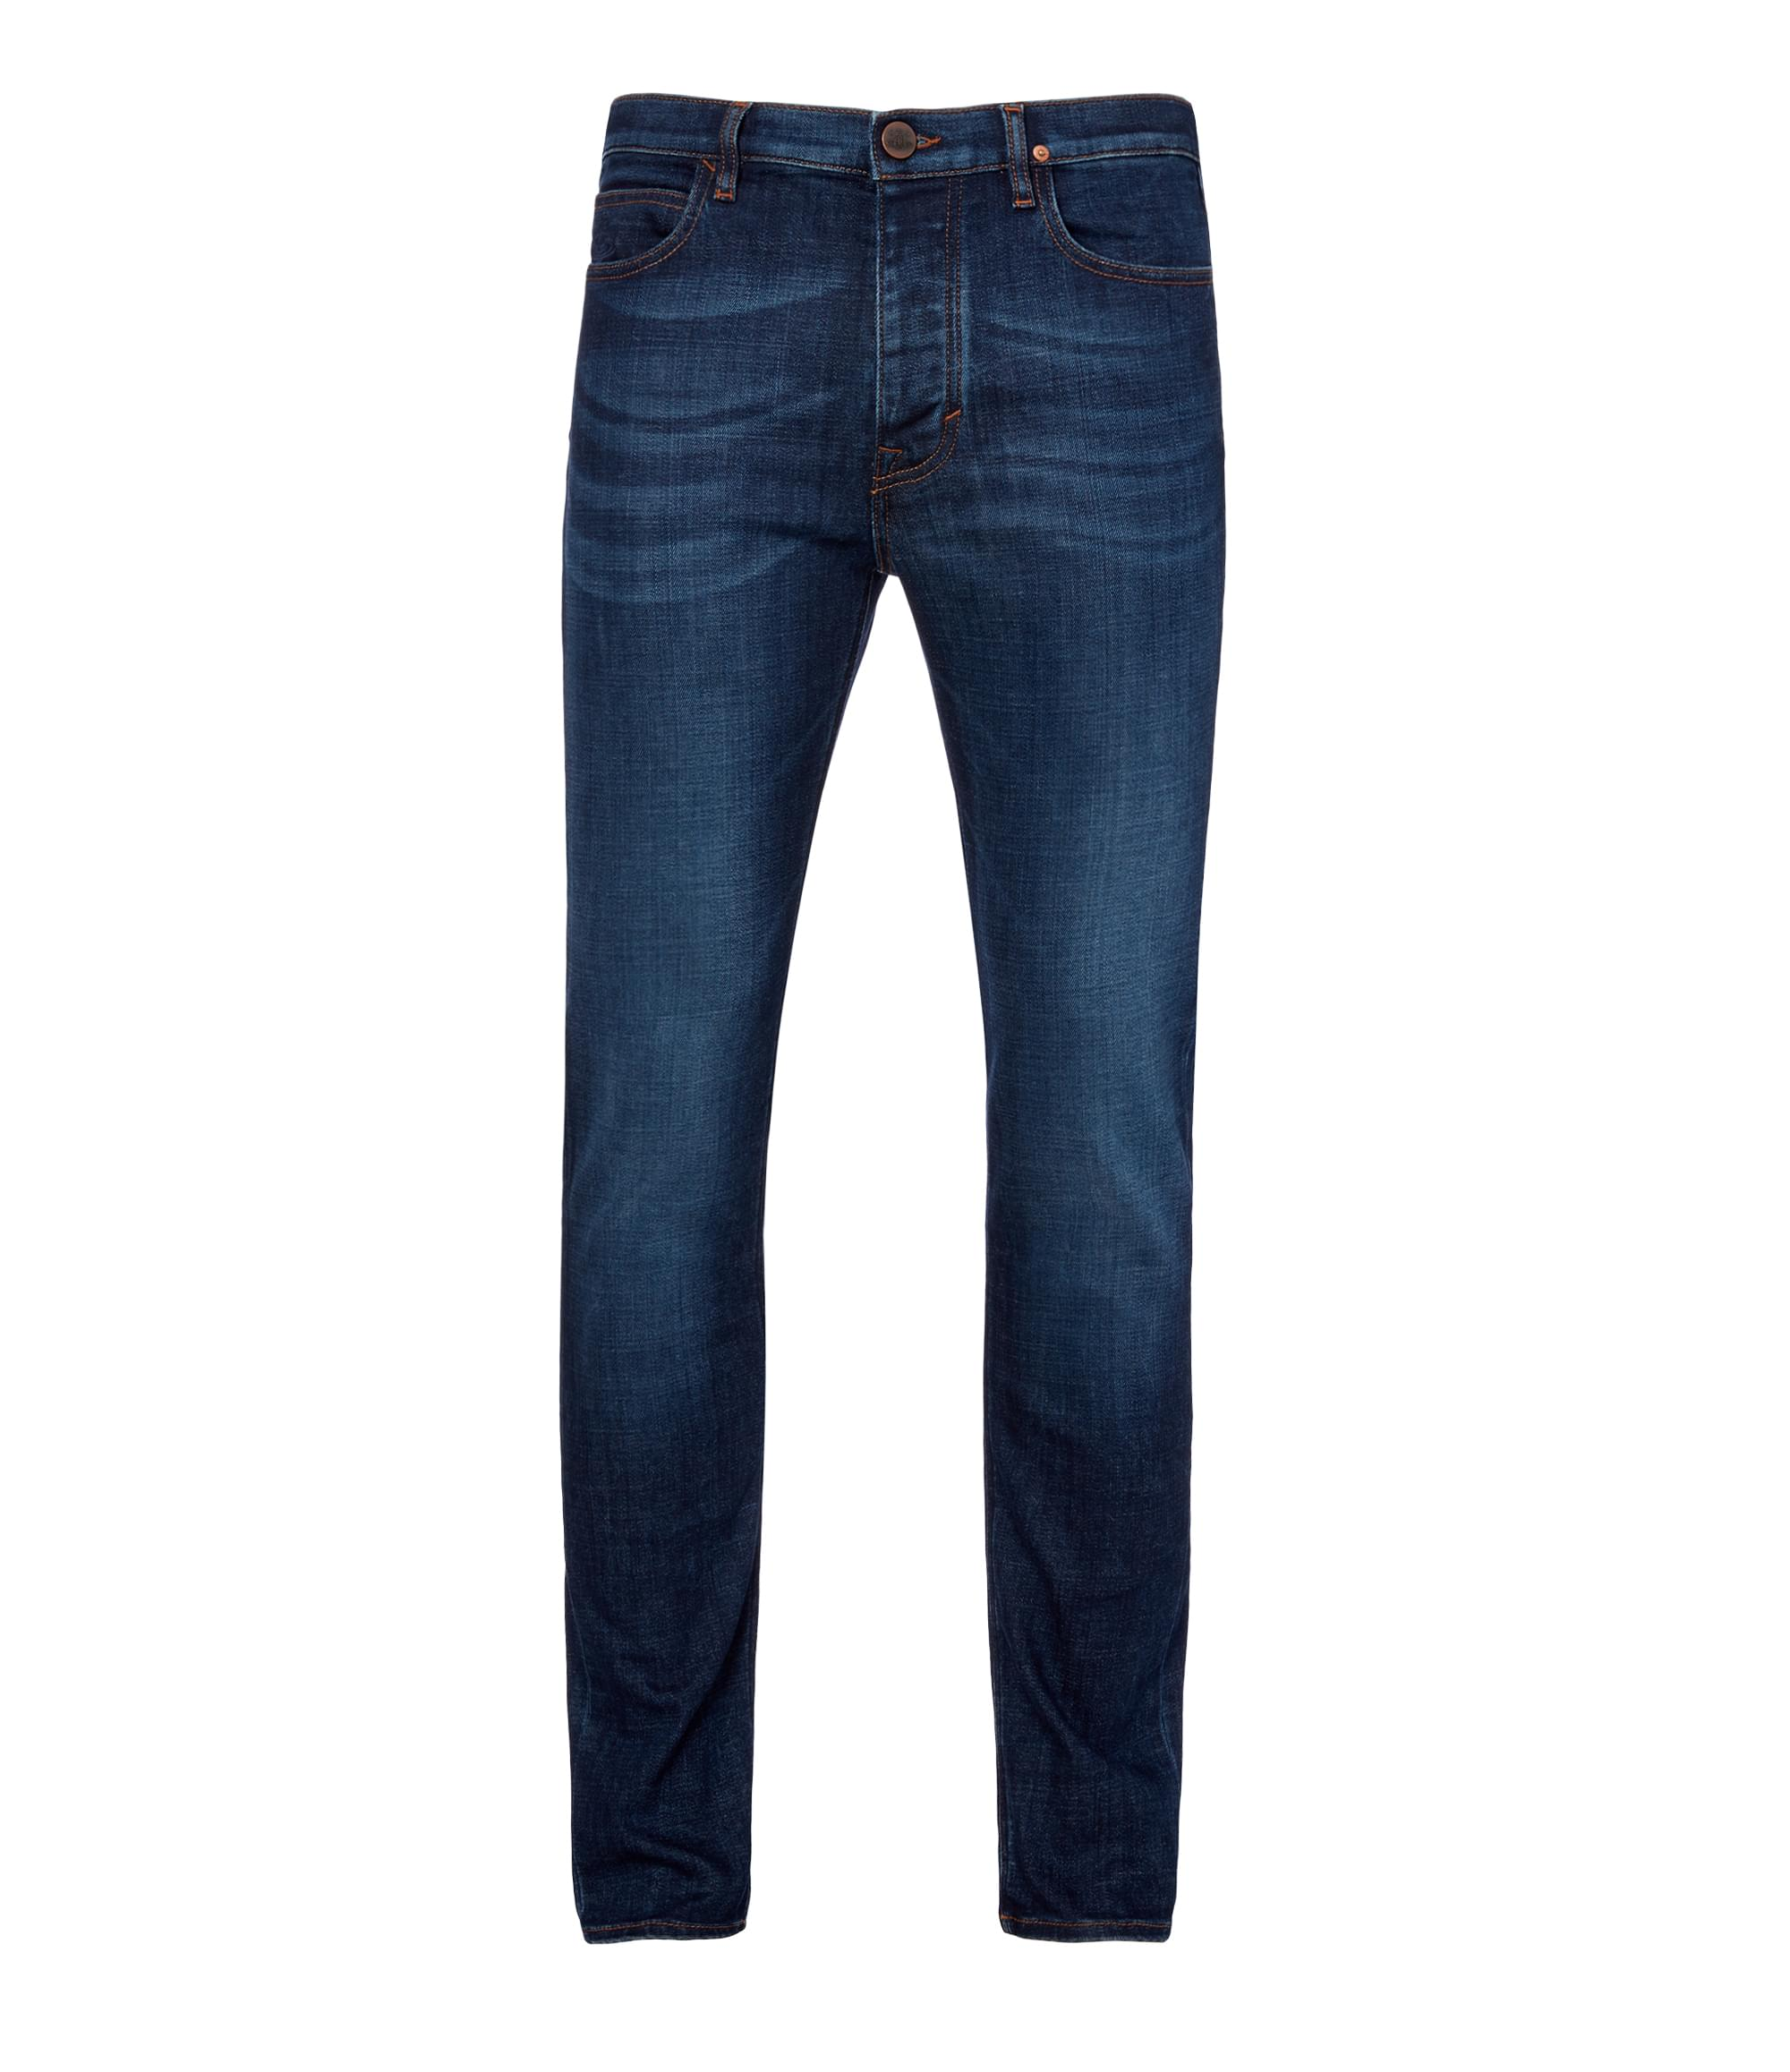 Vivienne Westwood Blue Washed Denim New Classic Tapered Jeans